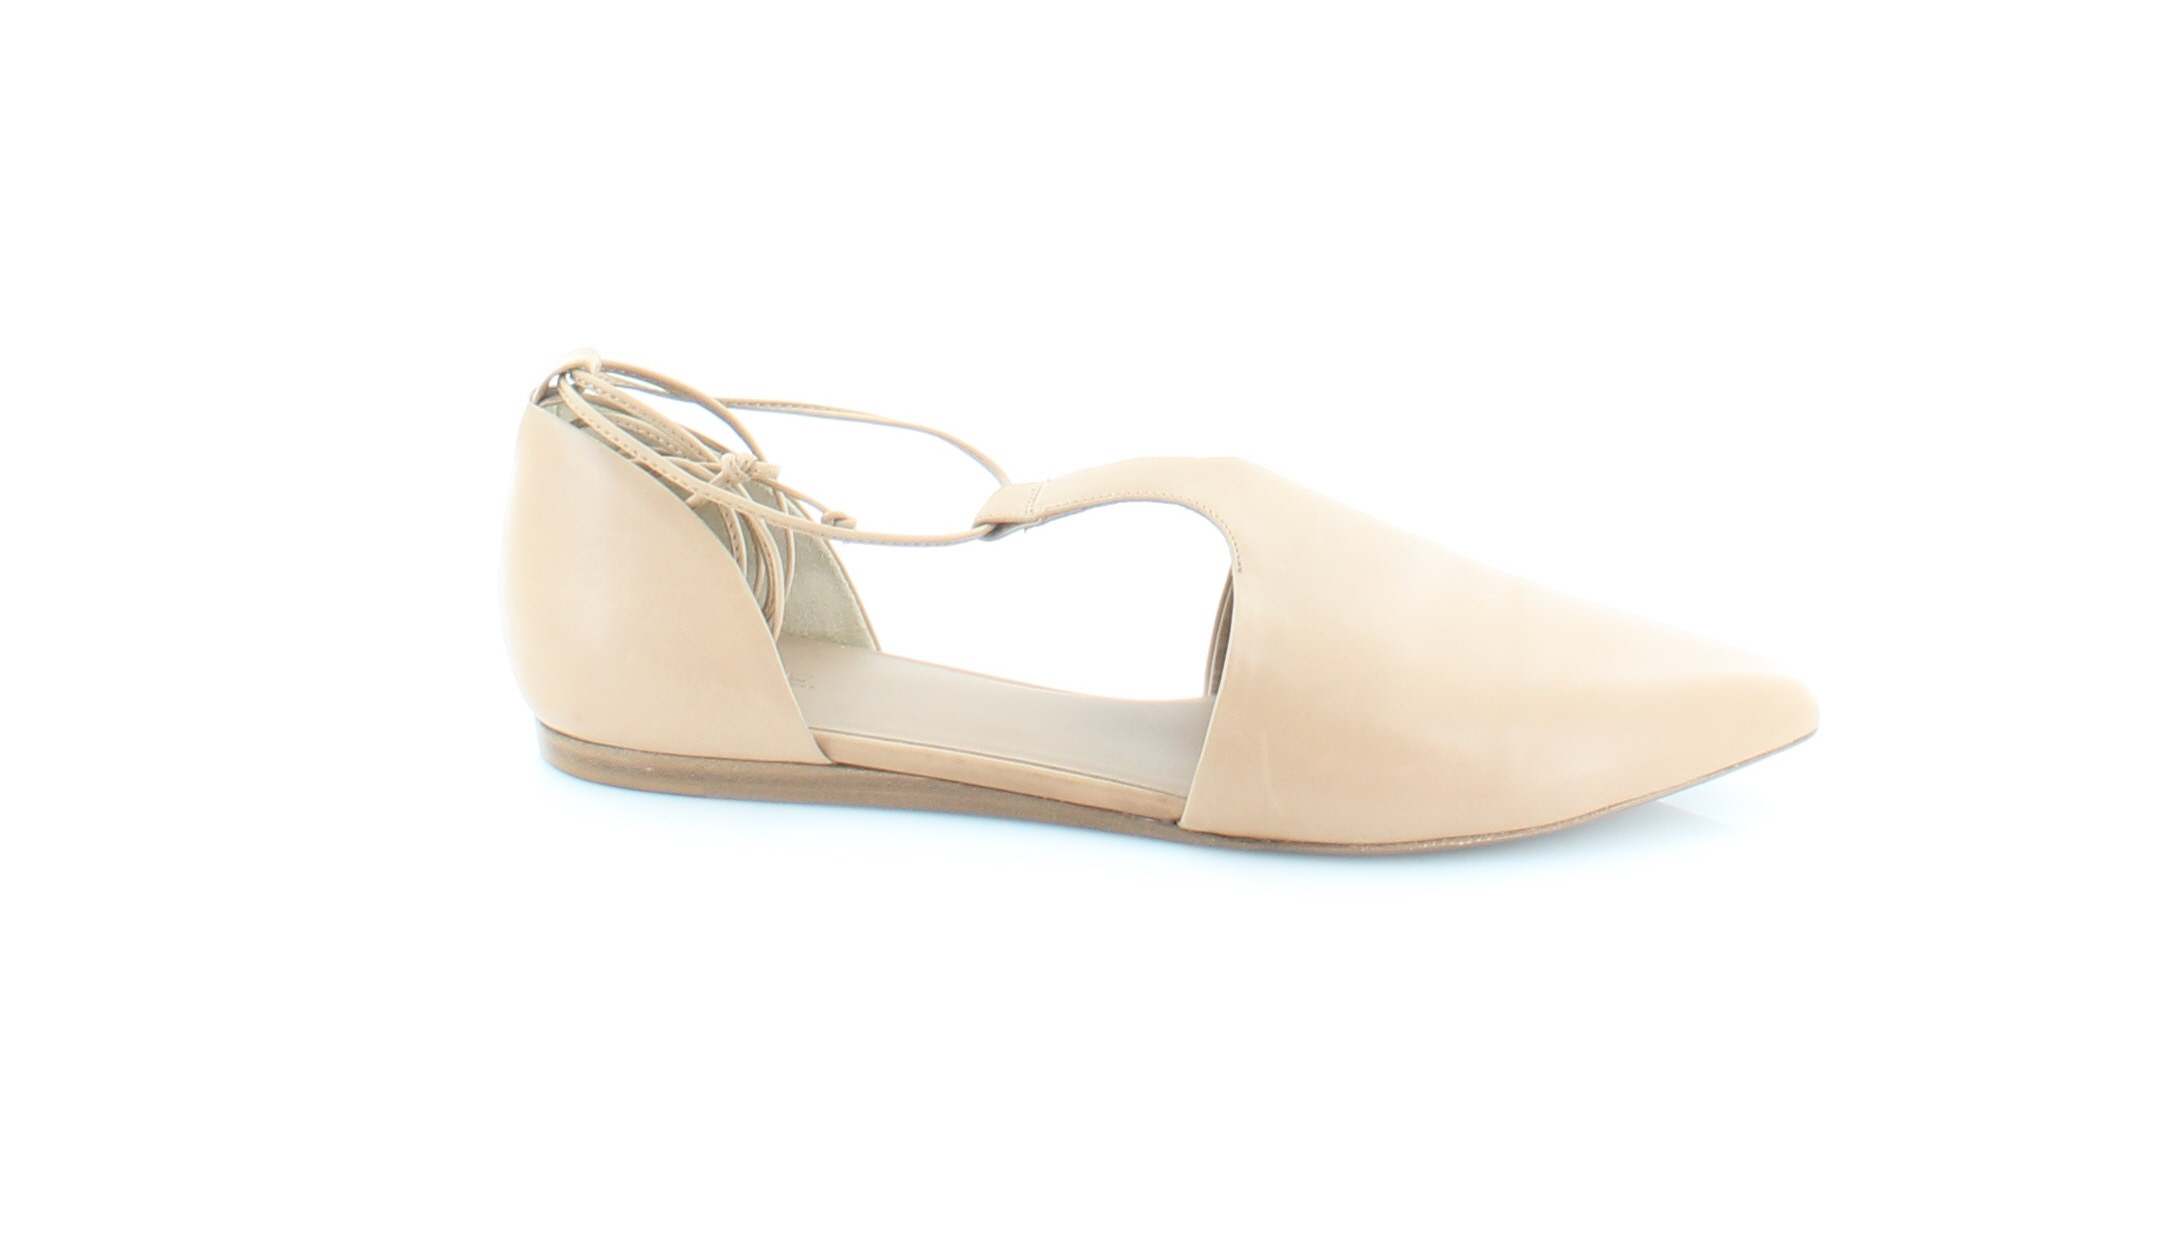 Vince. Noella Brown Womens Shoes Size 8.5 M Flats MSRP $325